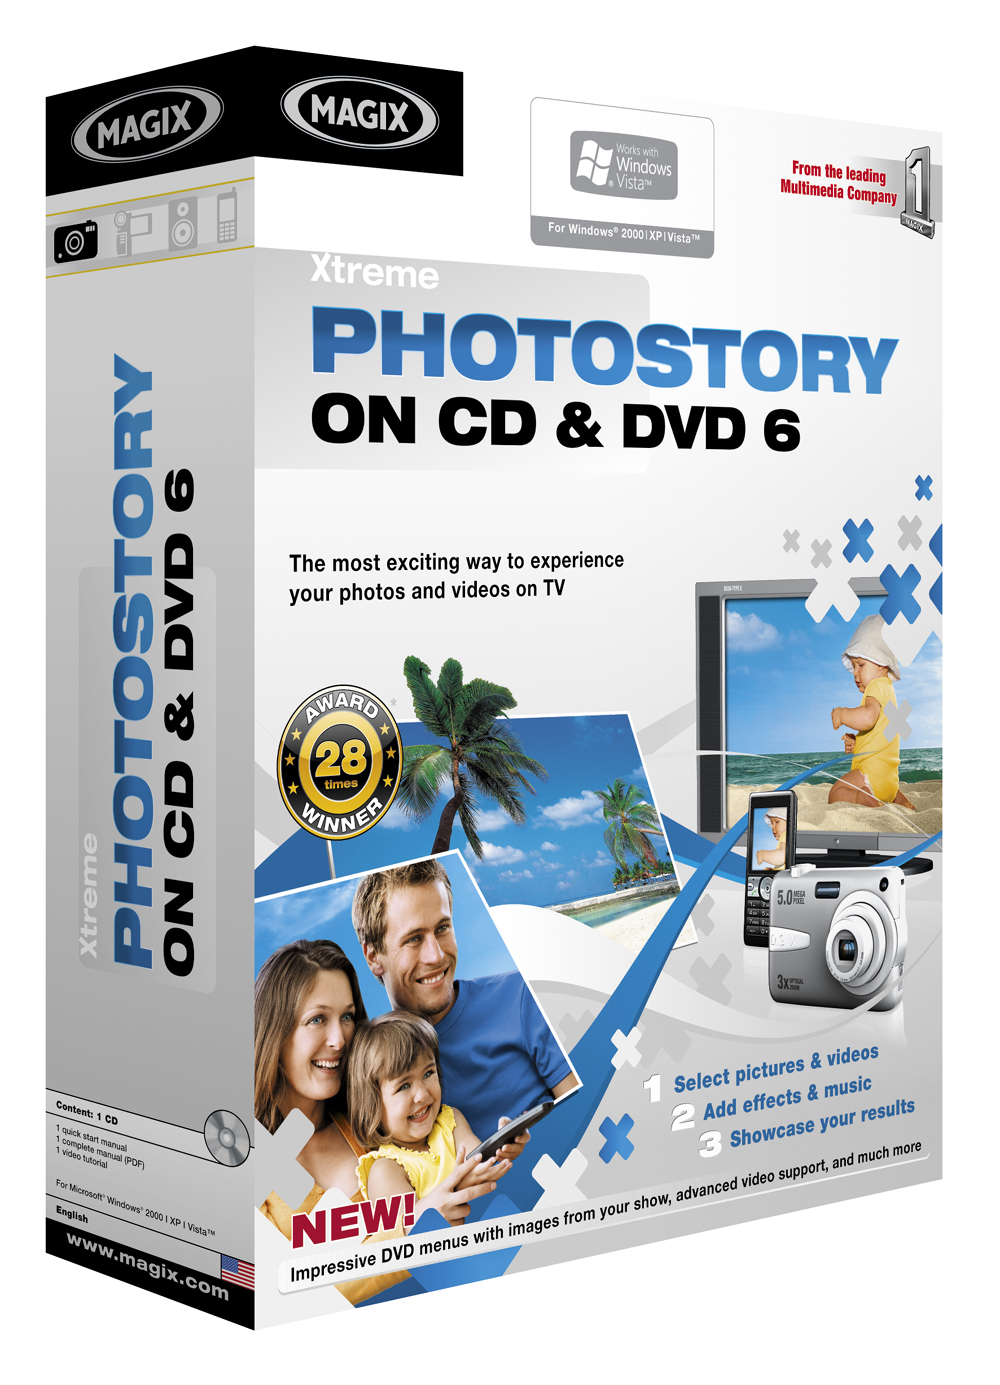 More info about MAGIX Xtreme PhotoStory on CD & DVD Multimedia_and_Productivity Archive ? Click here...